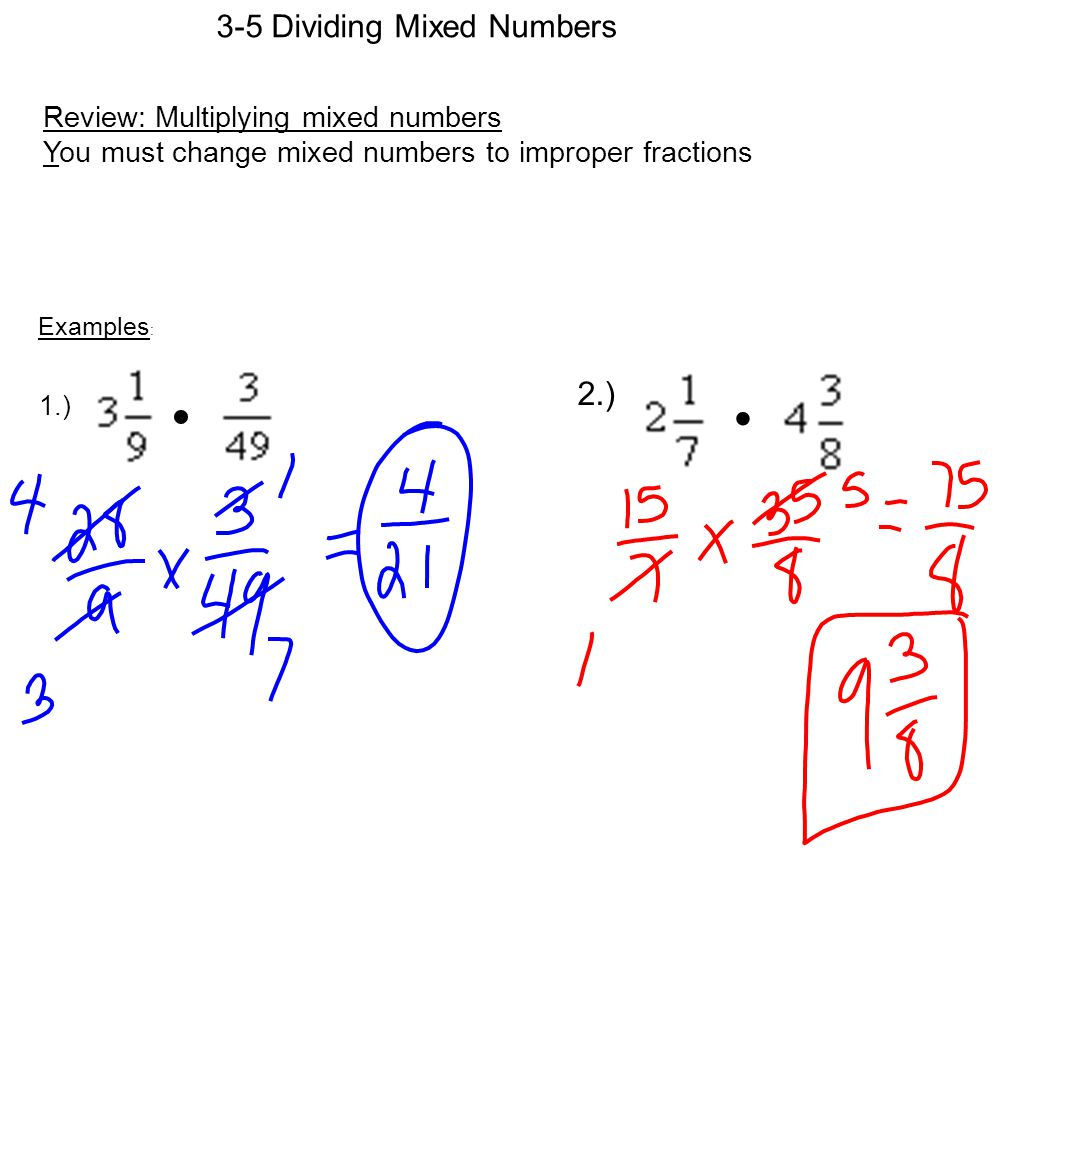 2.) 3-5 Dividing Mixed Numbers Review: Multiplying mixed numbers ...